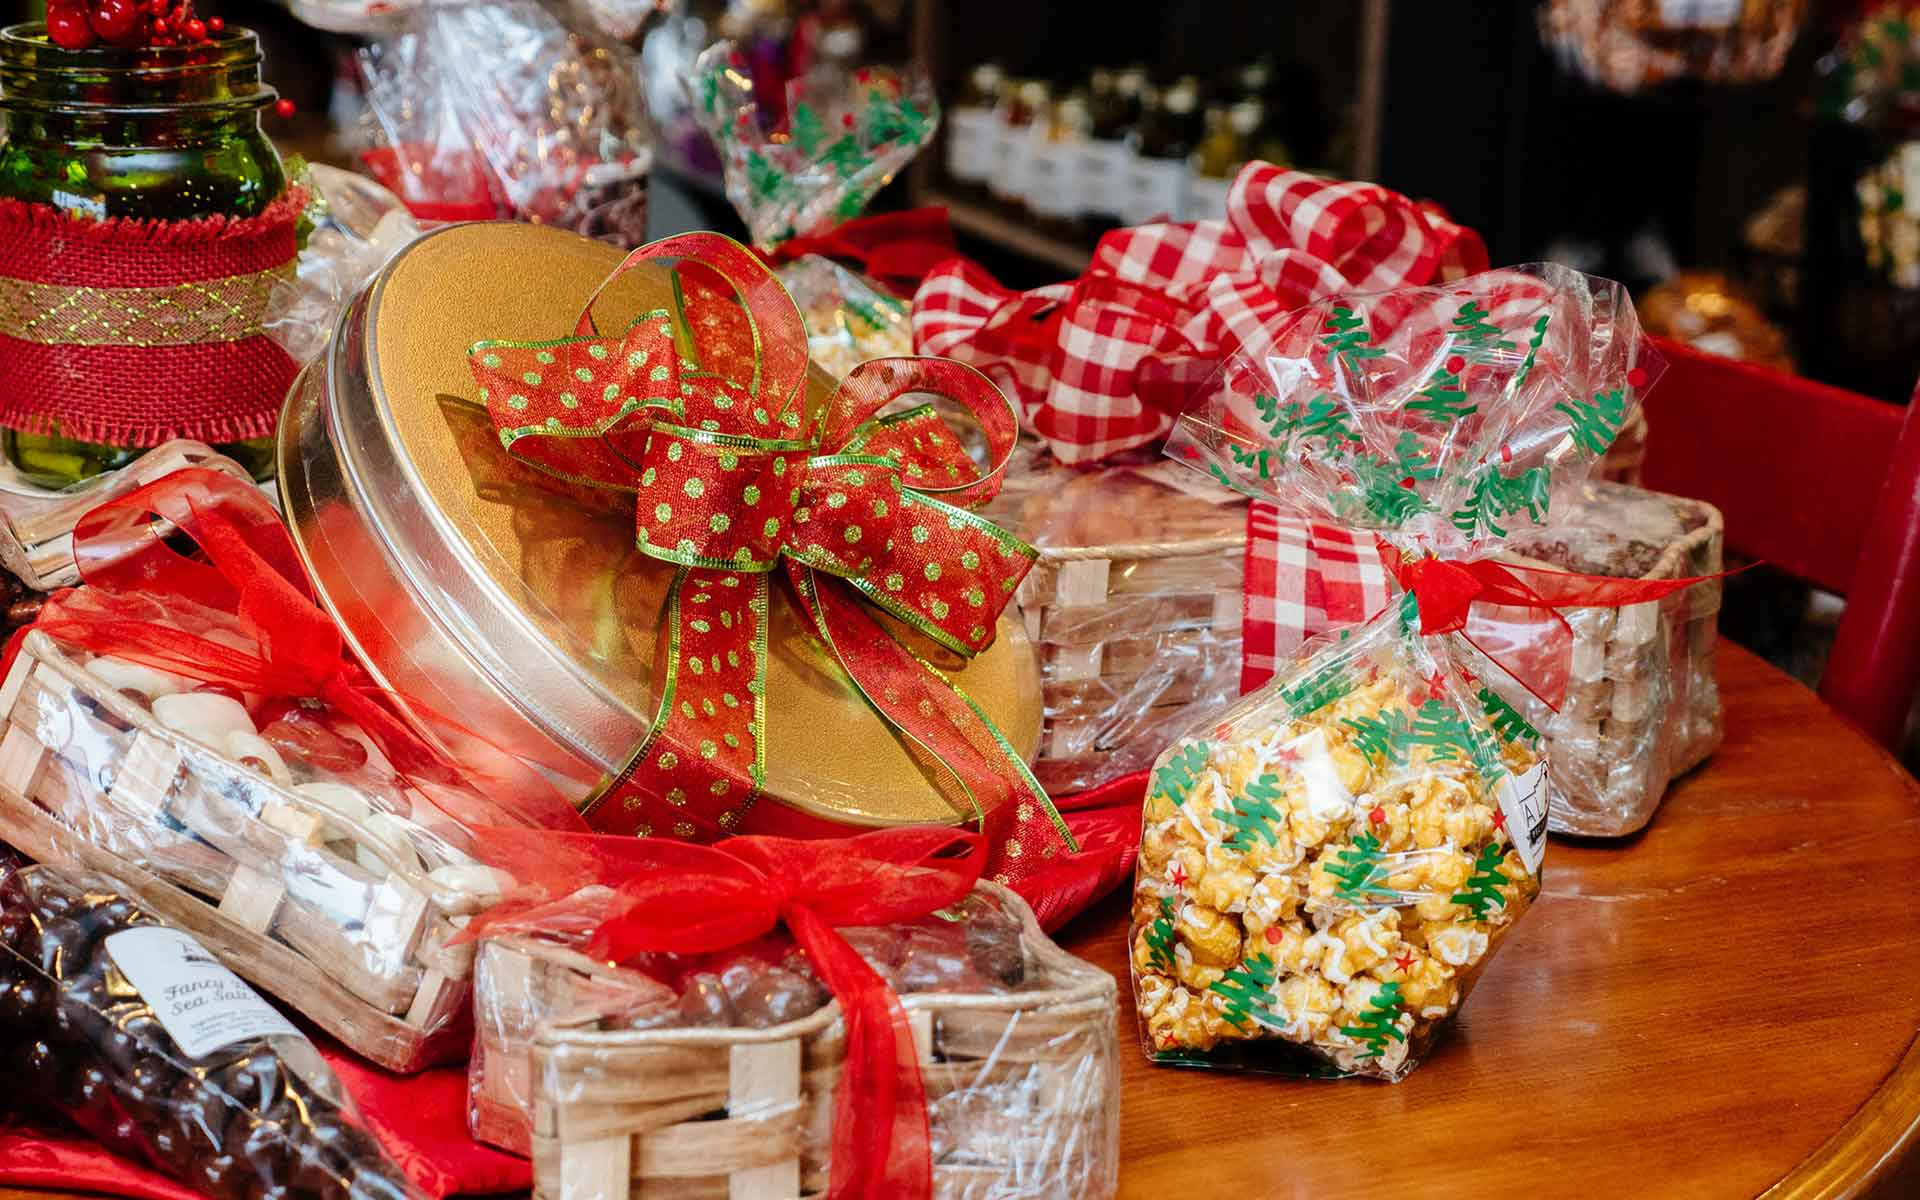 Alamo Pecan & Coffee Co. Gourmet Gift Guide